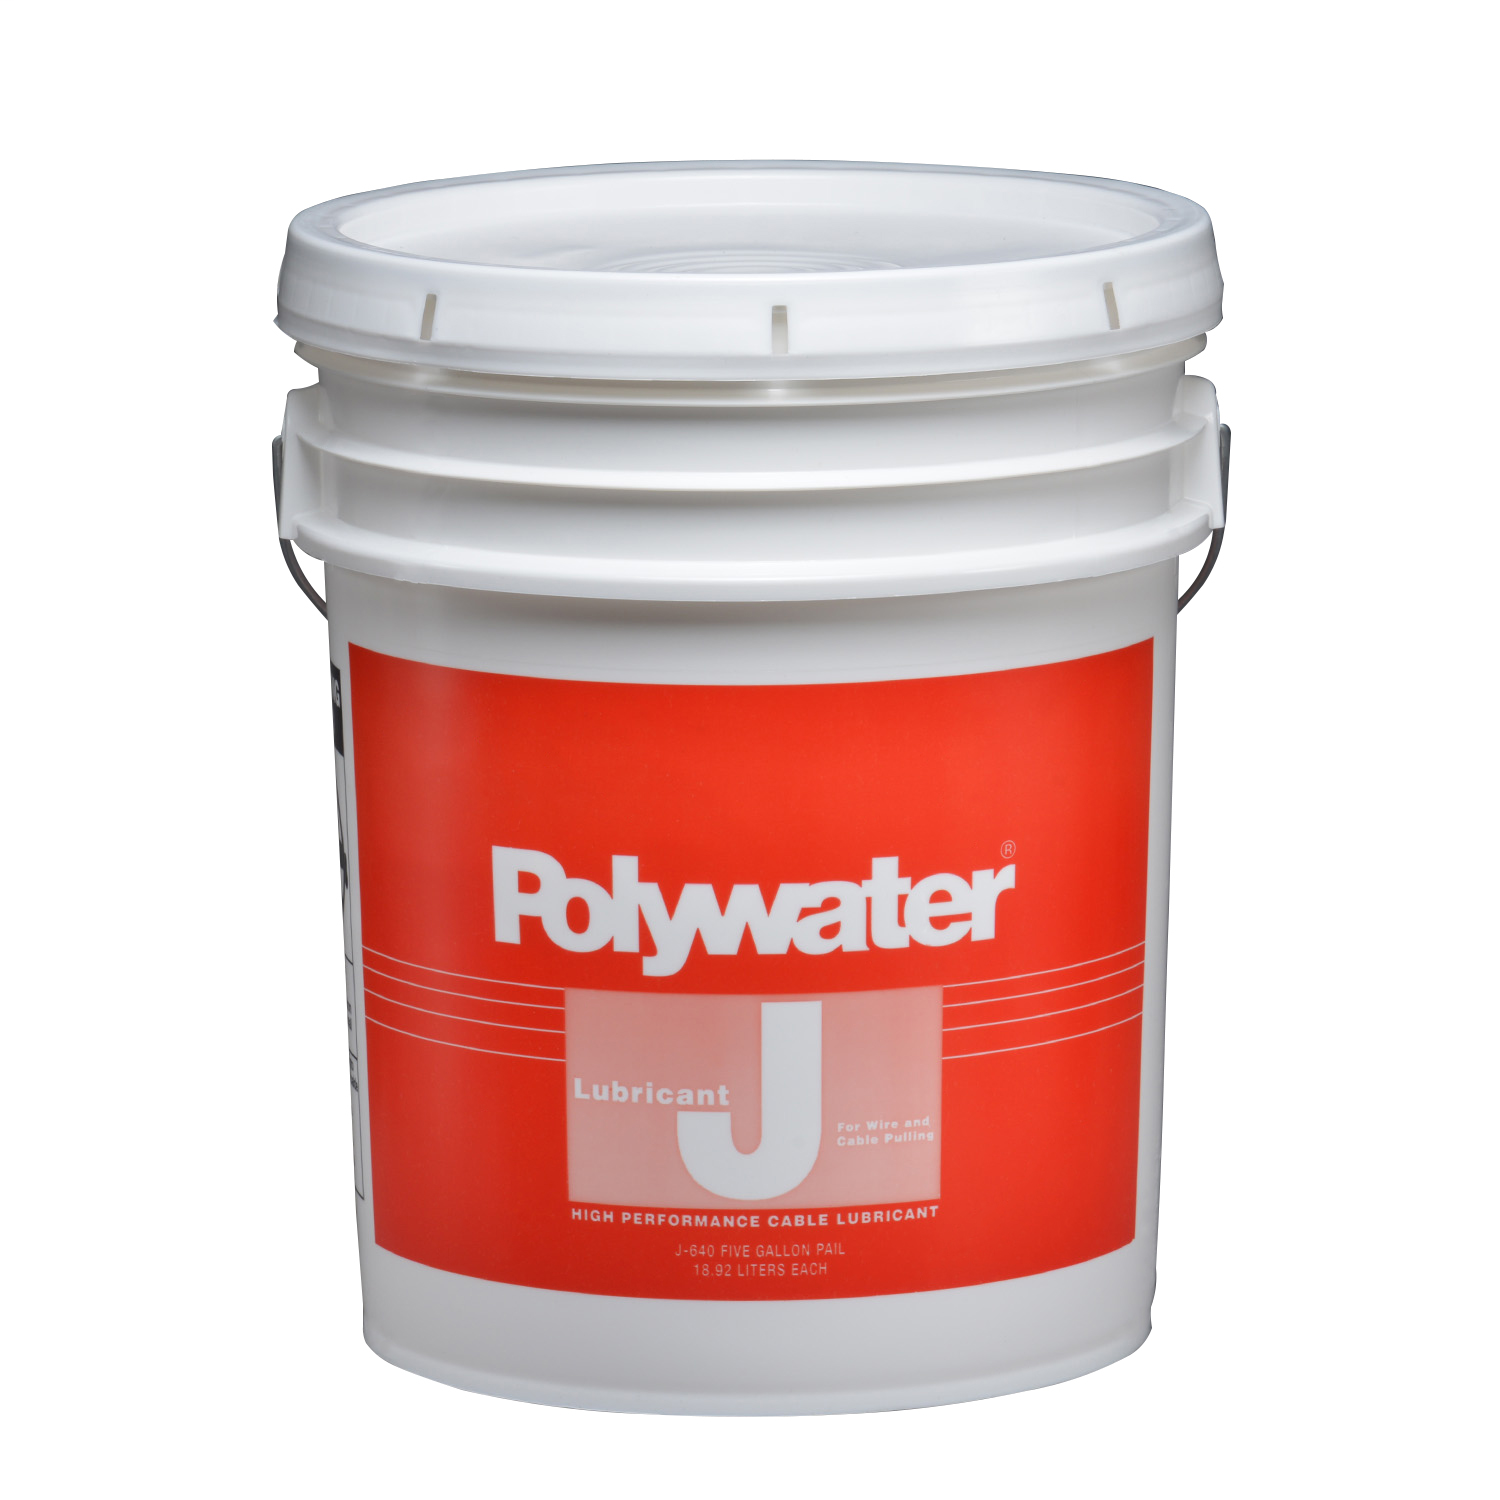 American Polywater,J-640,5-Gal Polywater® Lubricant J